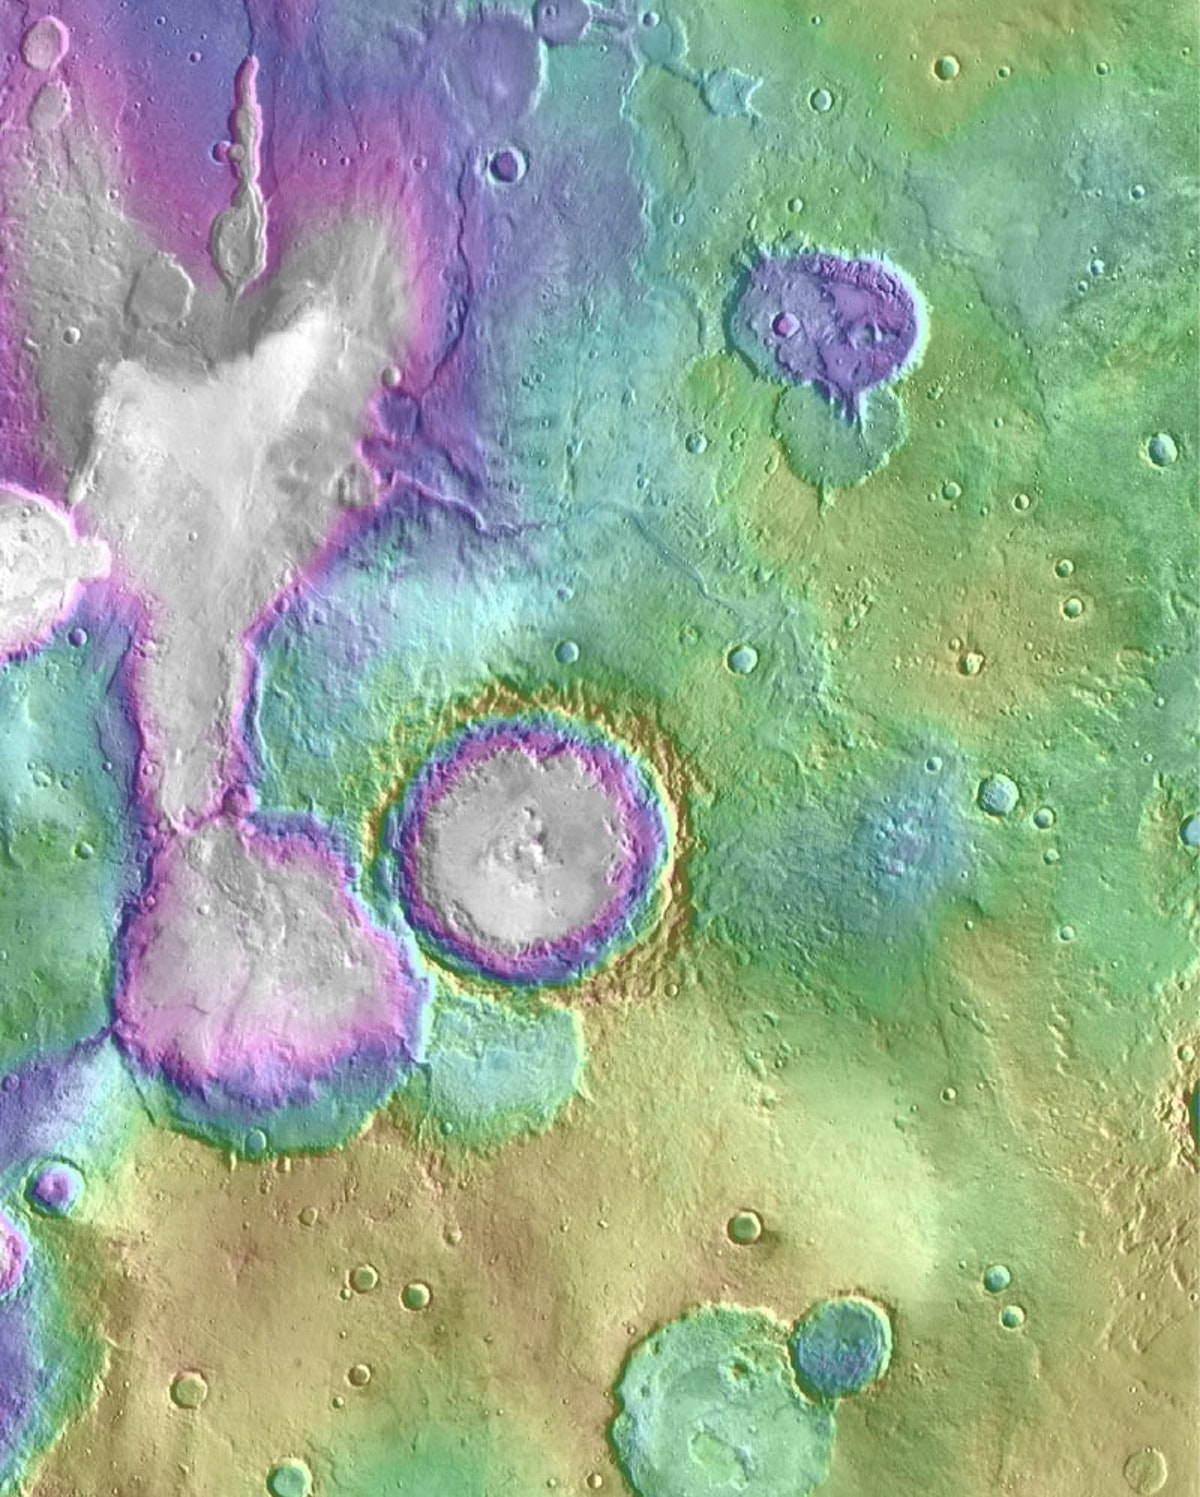 """Valleys much younger than well-known ancient valley networks on Mars are evident near the informally named """"Heart Lake"""" on Mars."""